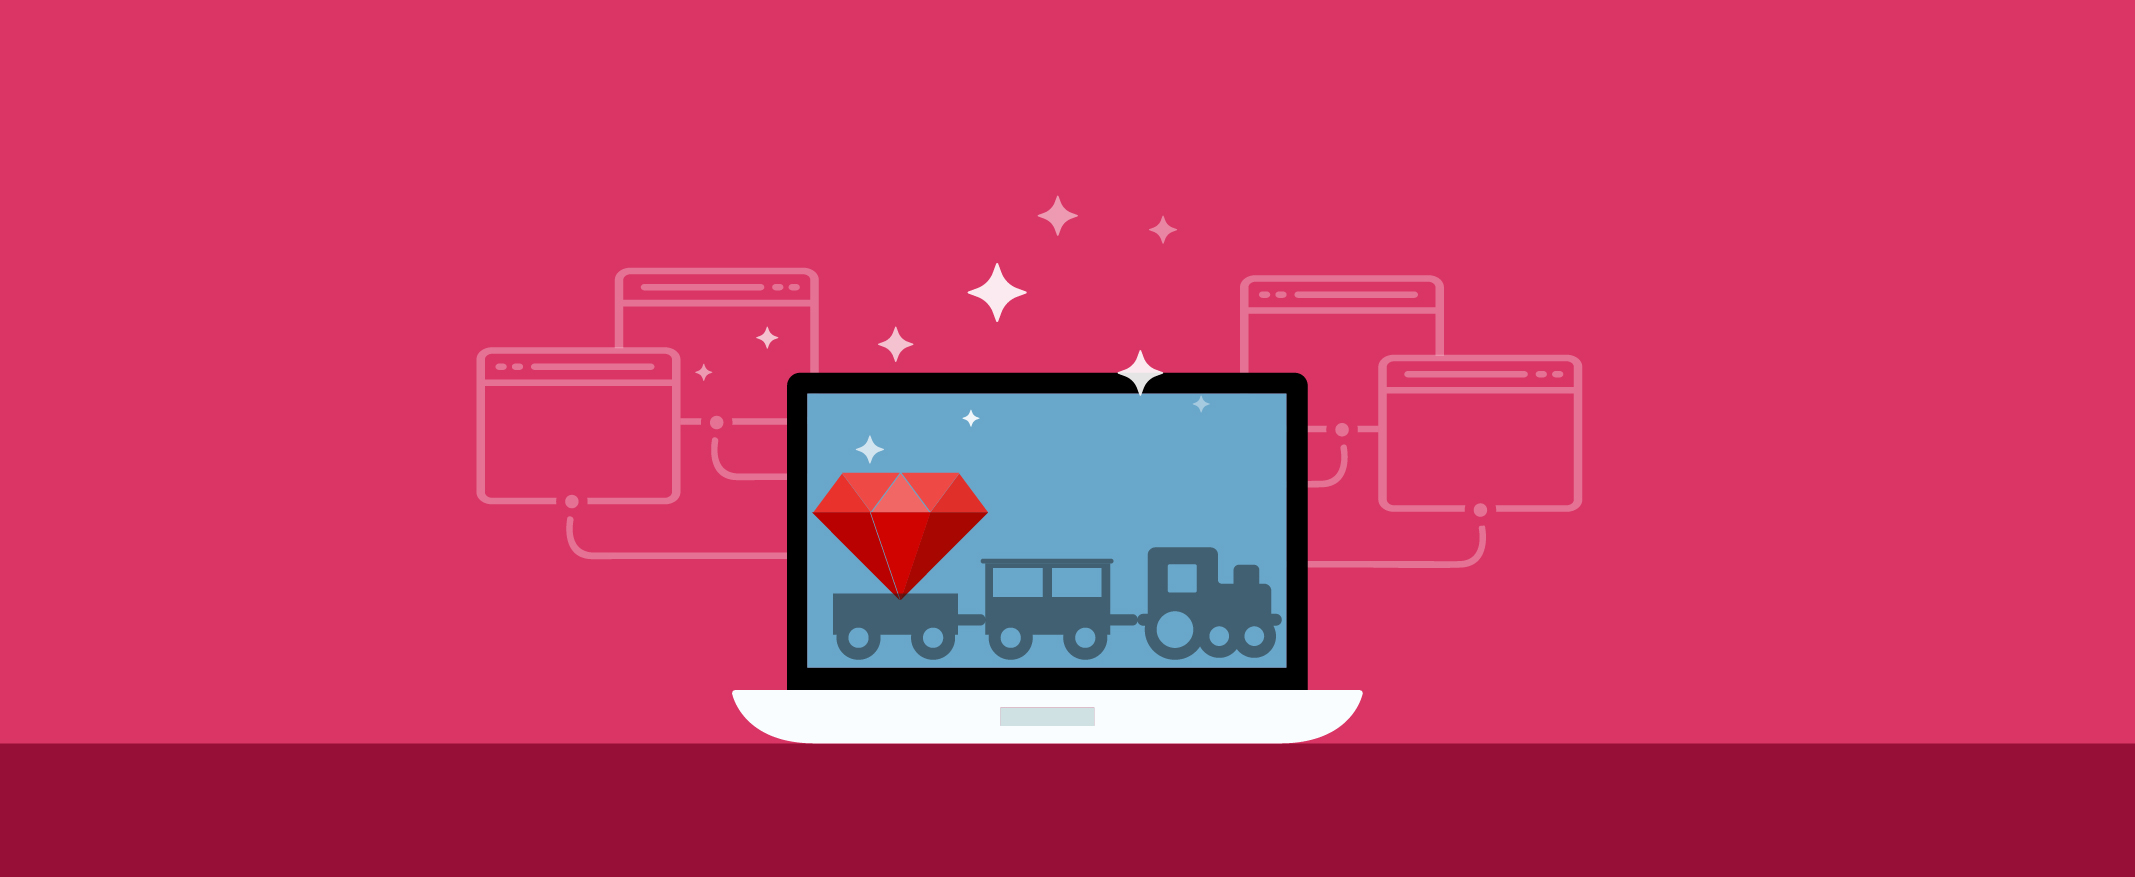 How to deploy the Ruby on Rails application with HAProxy Ingress, unicorn /puma, and